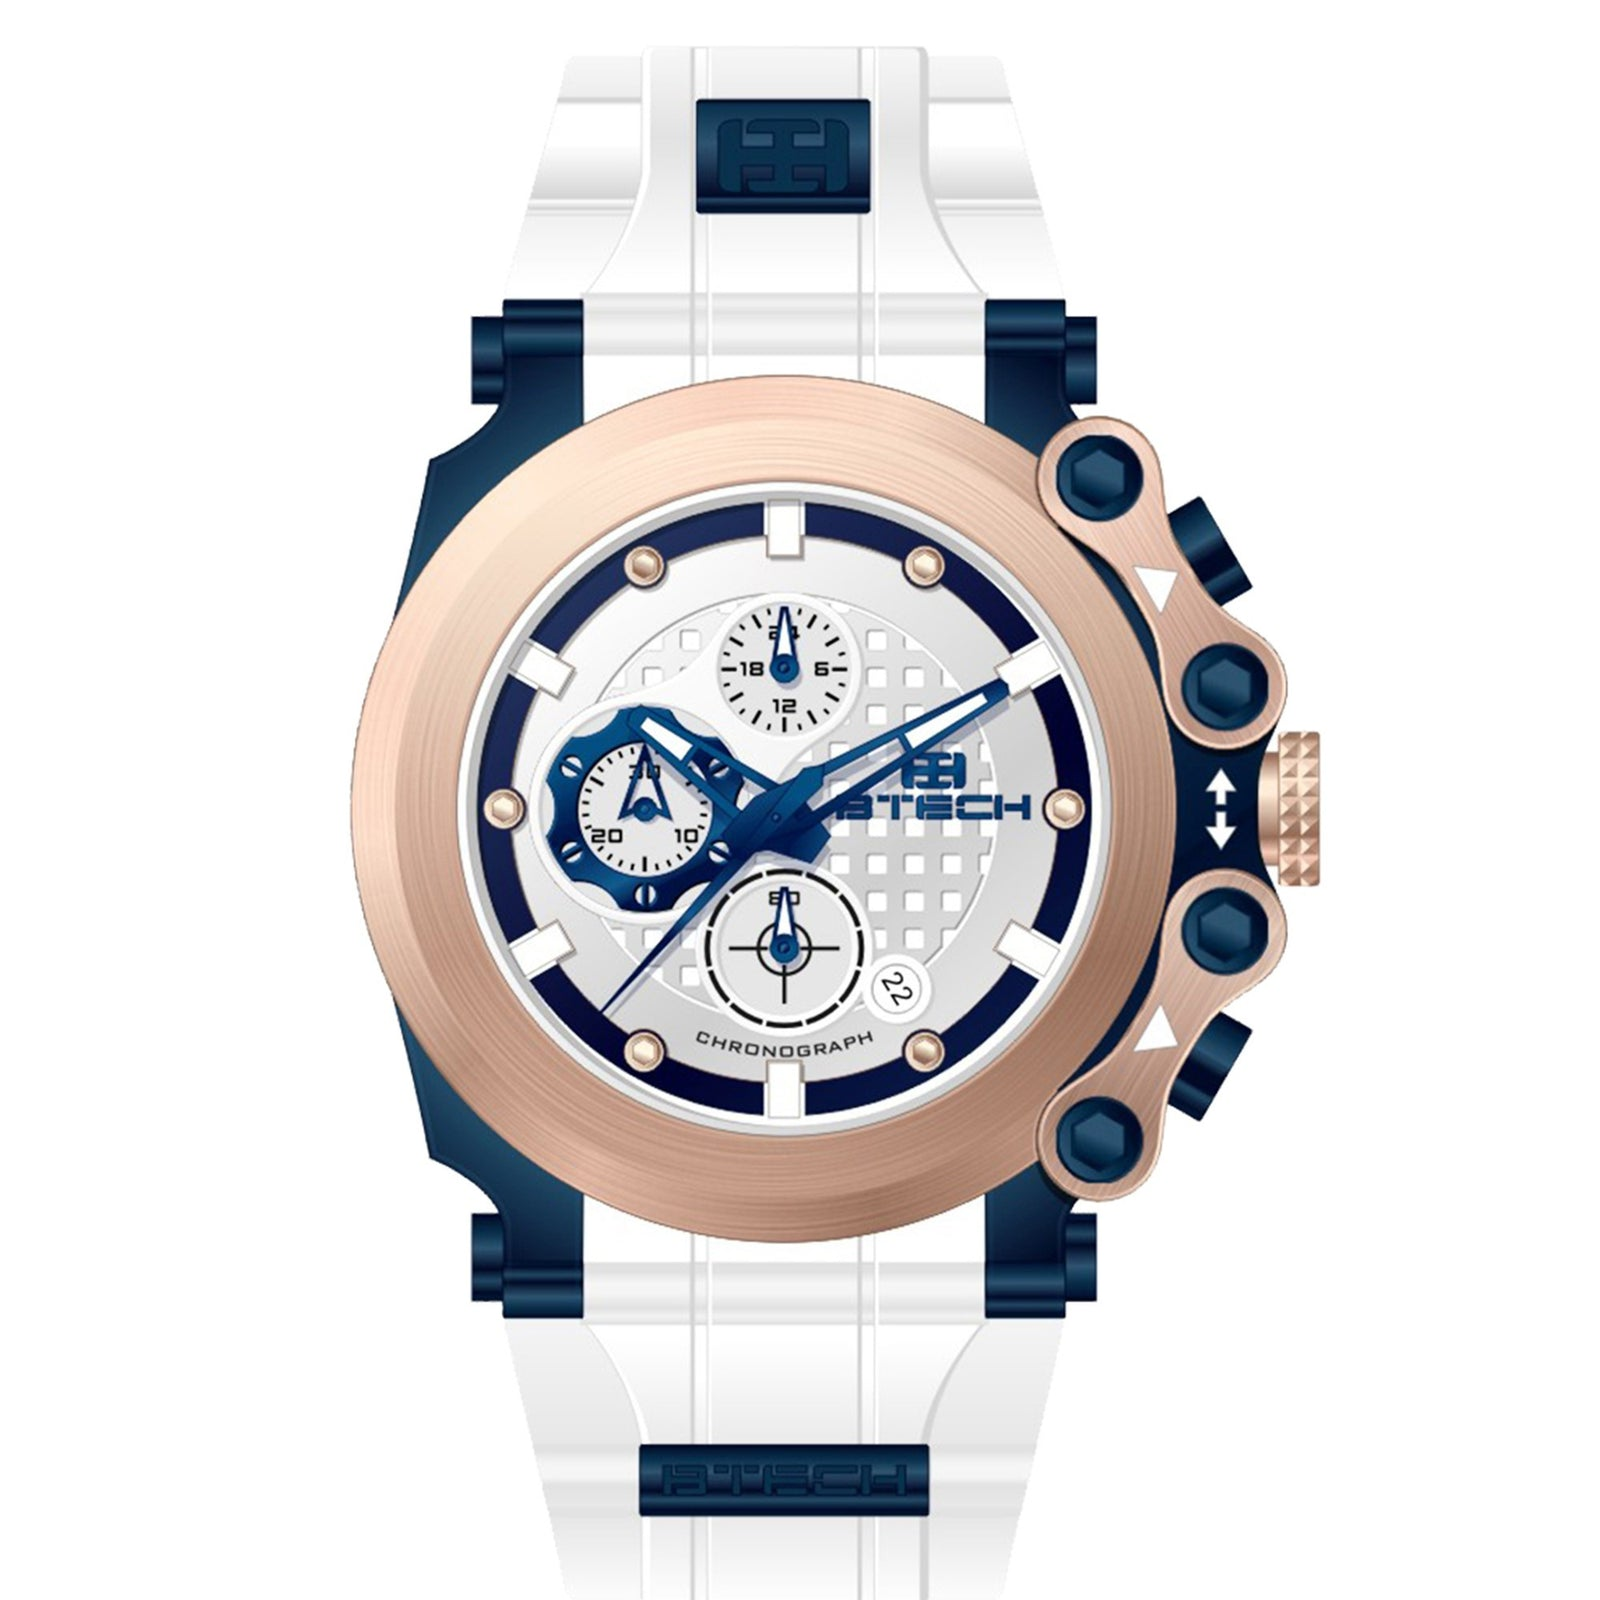 BTECH Cite Chrono White Blue Unisex Watch (BT-CC-343-01)